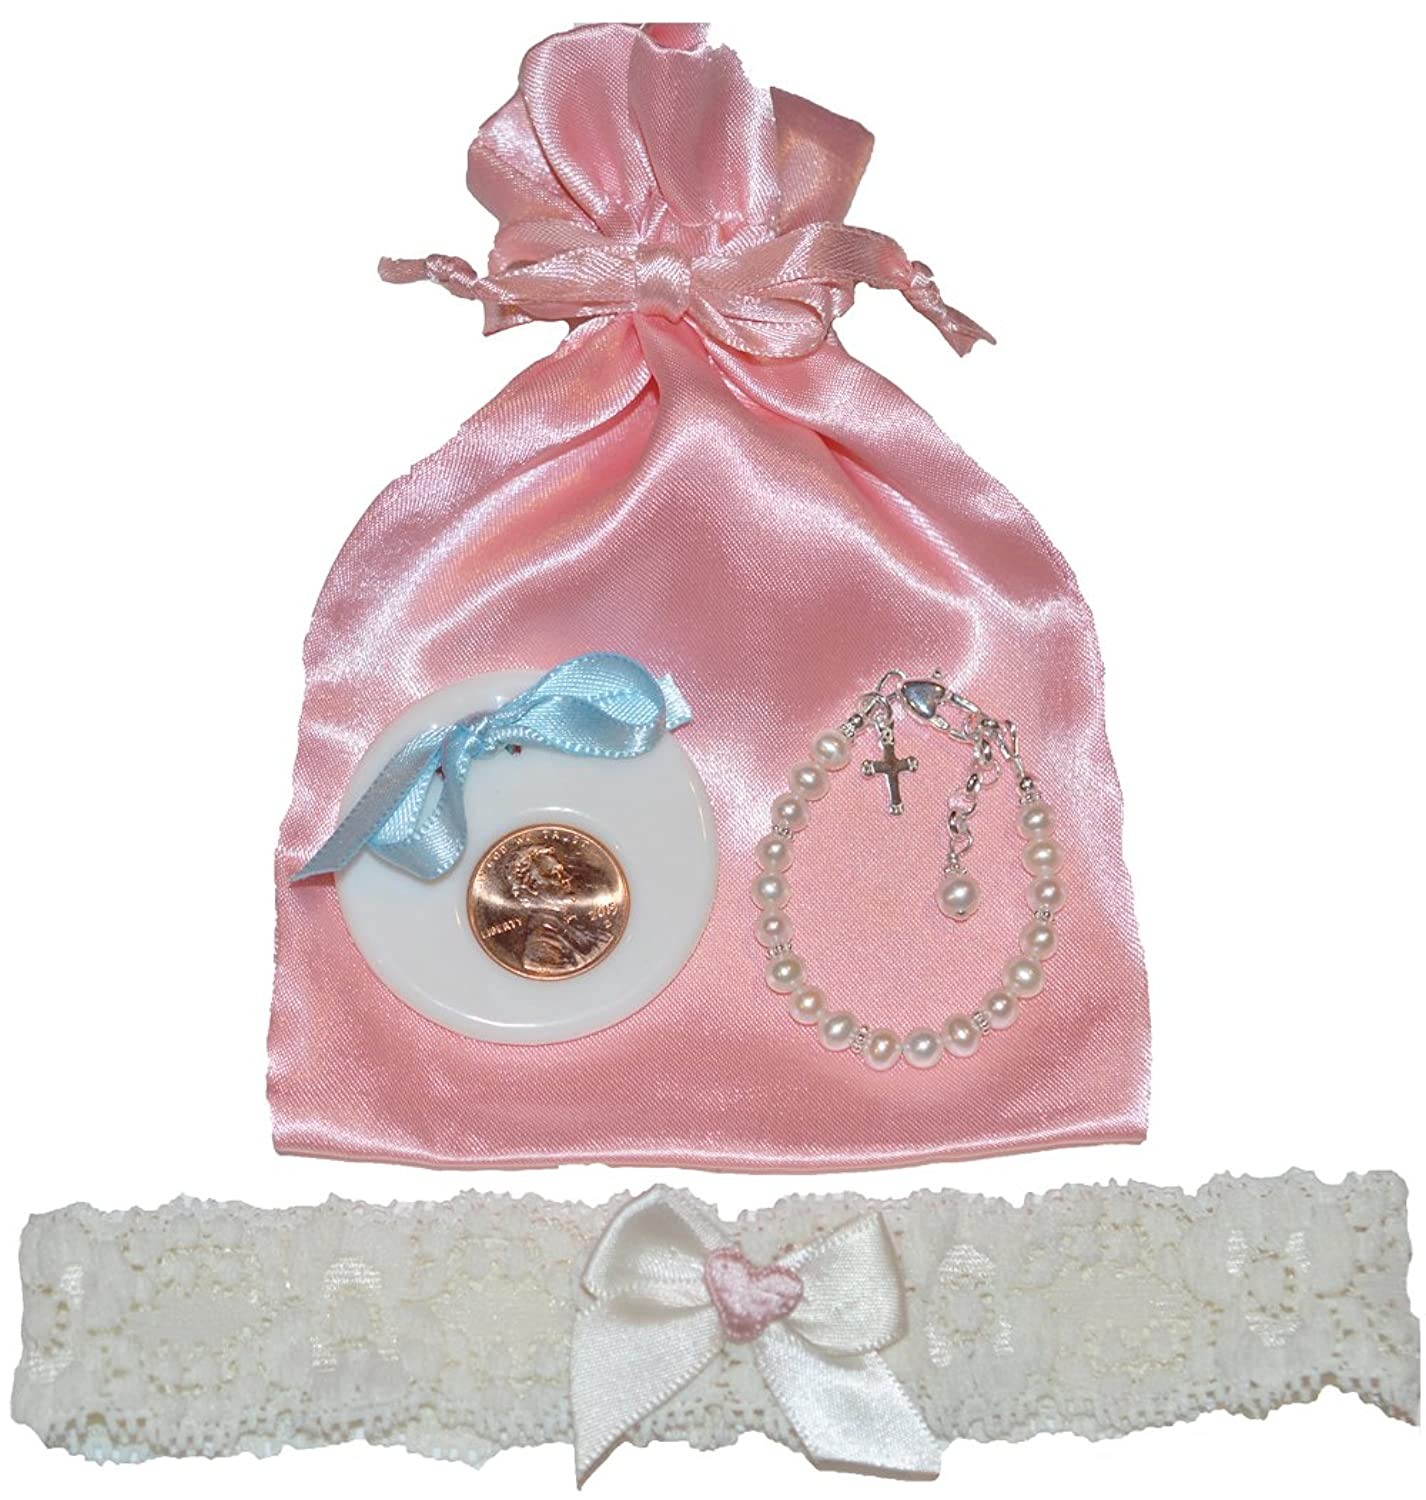 Amazon.com: Lily Brooke Baby Keepsakes To Bride Gift Set- Poem ...